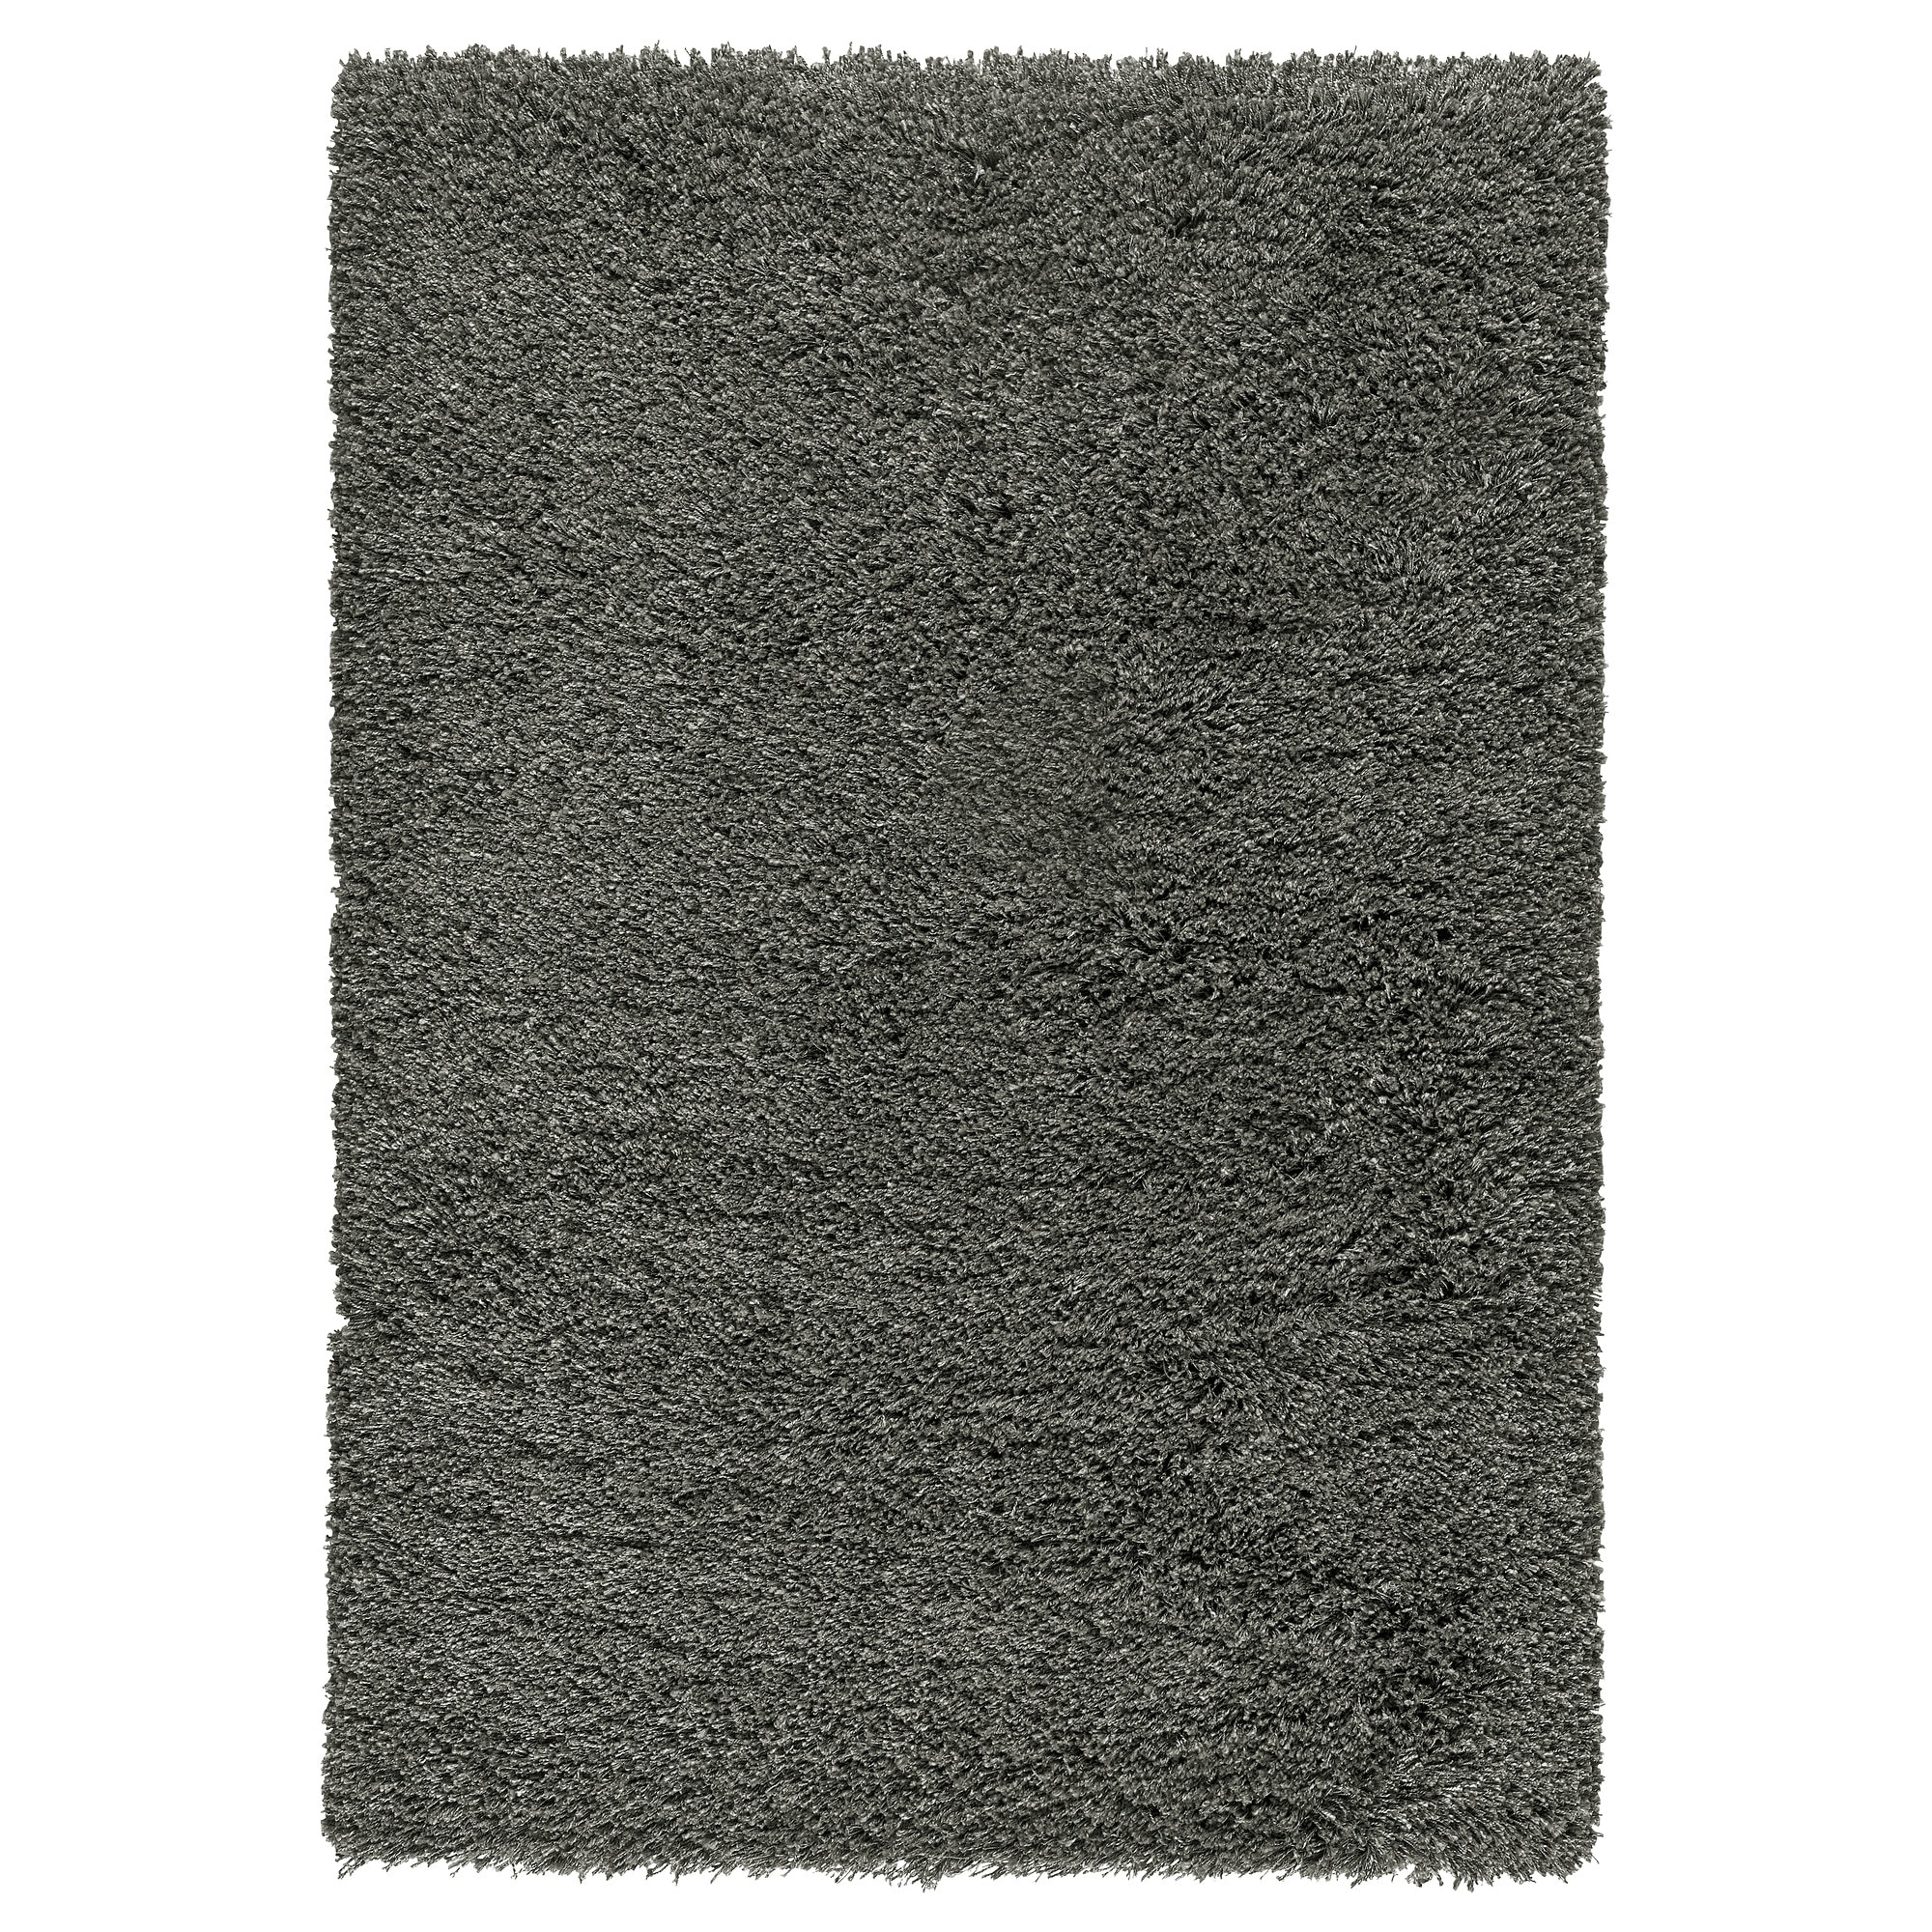 Making a rug out of carpet - G Ser Rug High Pile Dark Gray Length 7 10 Width